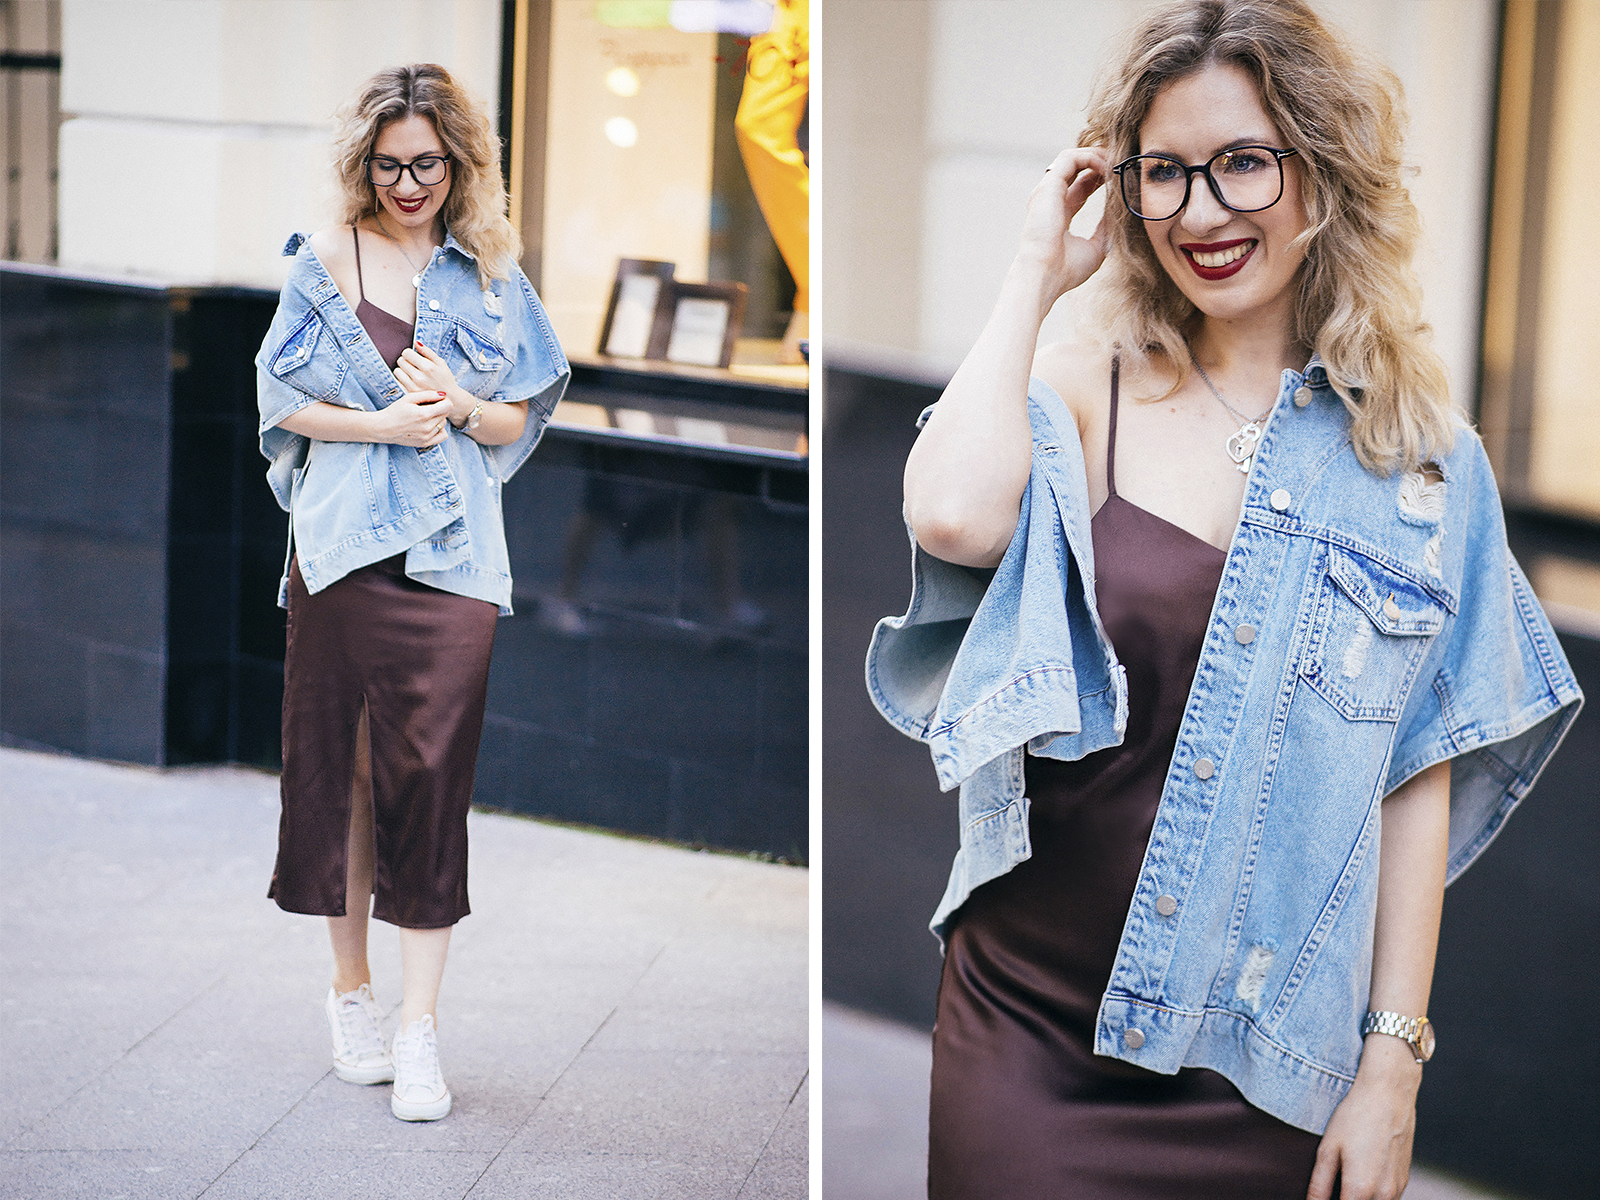 rita_maslova_fashion_blogger_ritalifestyle_denim_jacket_underwear_dress_glasses_red_lips_4